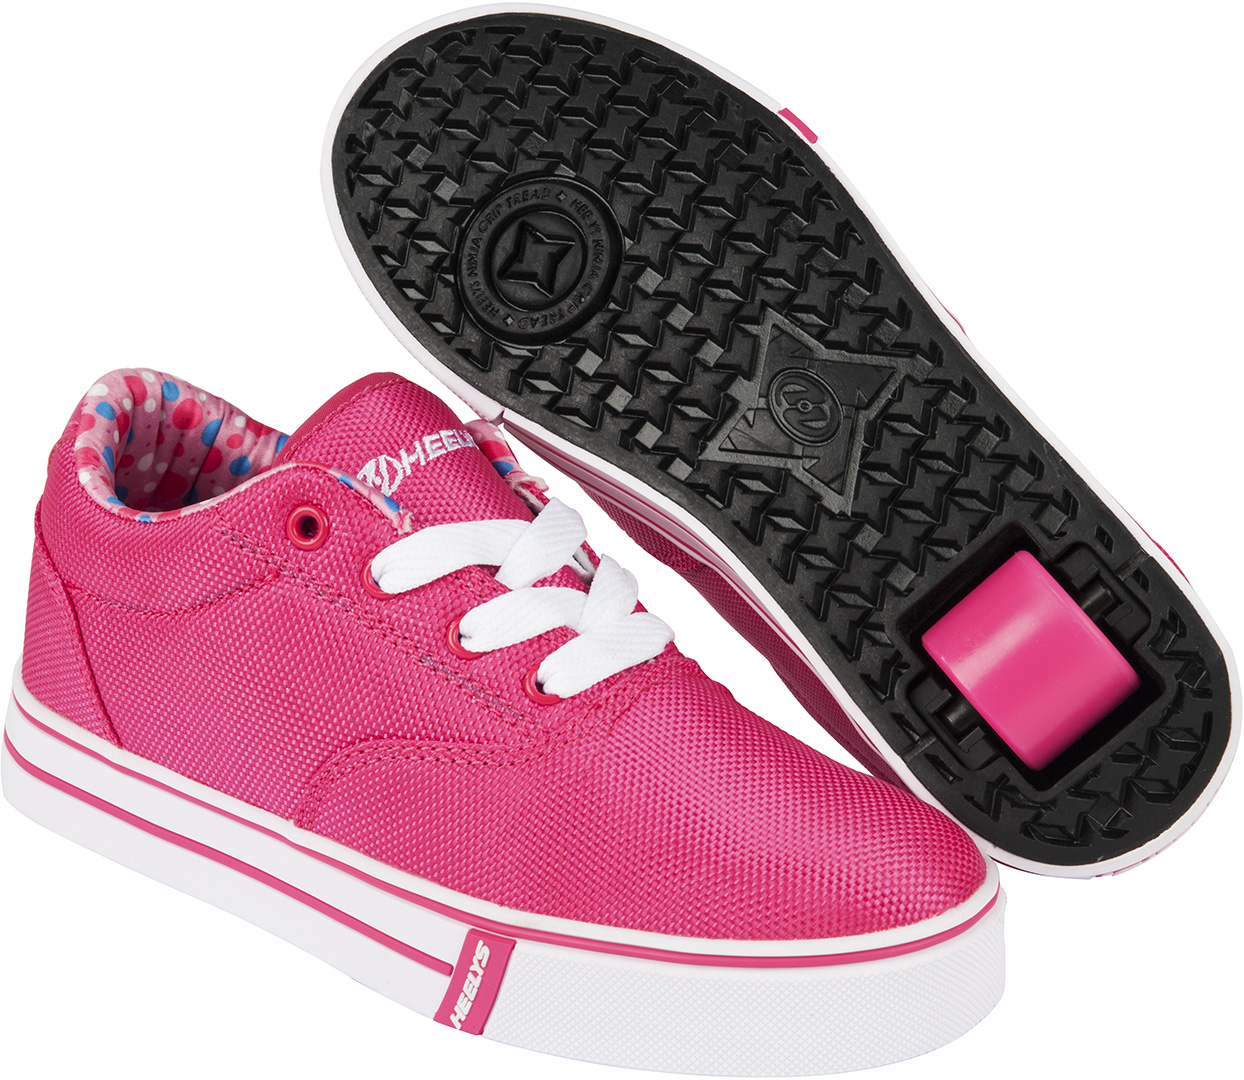 heelys launch 2 0 schuh 2016 fuchsia printed lining schuhe. Black Bedroom Furniture Sets. Home Design Ideas